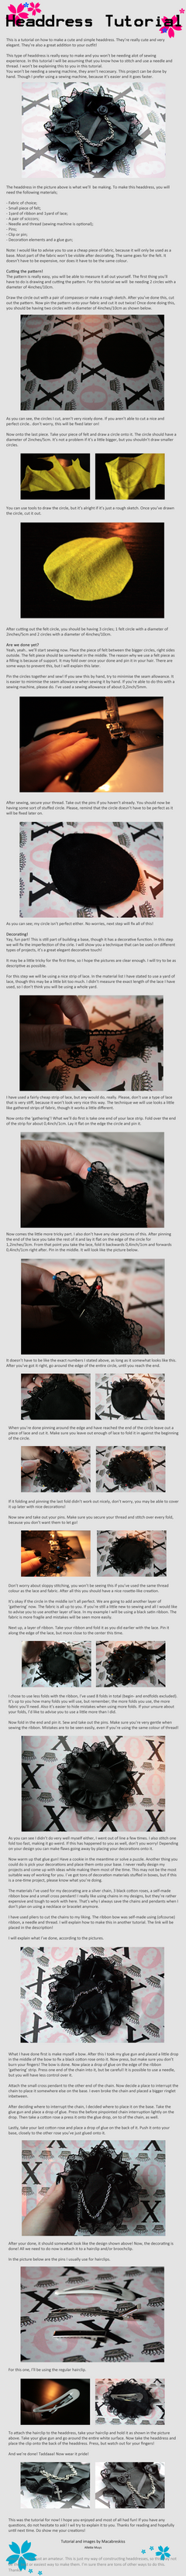 +__ Headdress tutorial by Macabreskiss